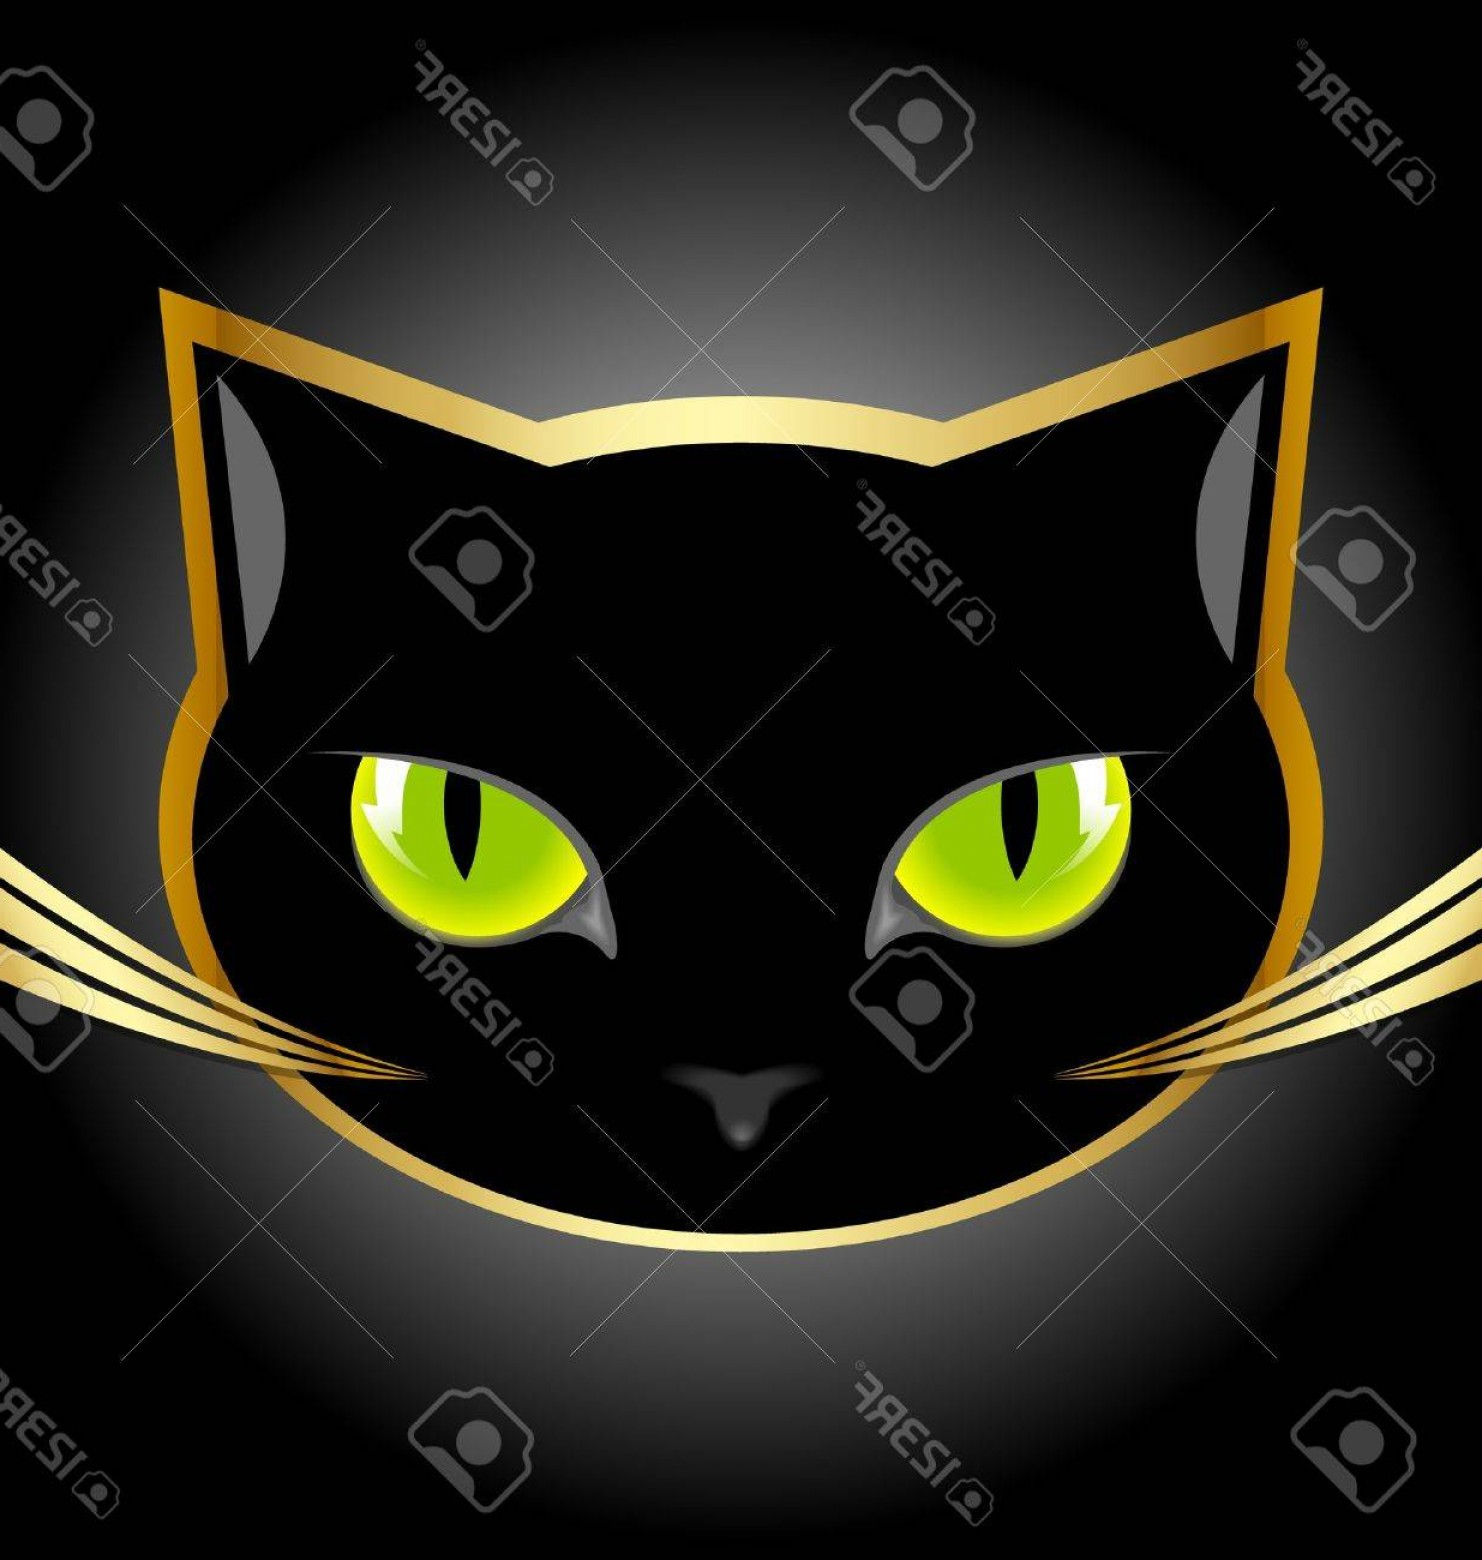 Malee Cat Head Silhouette Vector: Photogolden And Black Cat Head On Black Background